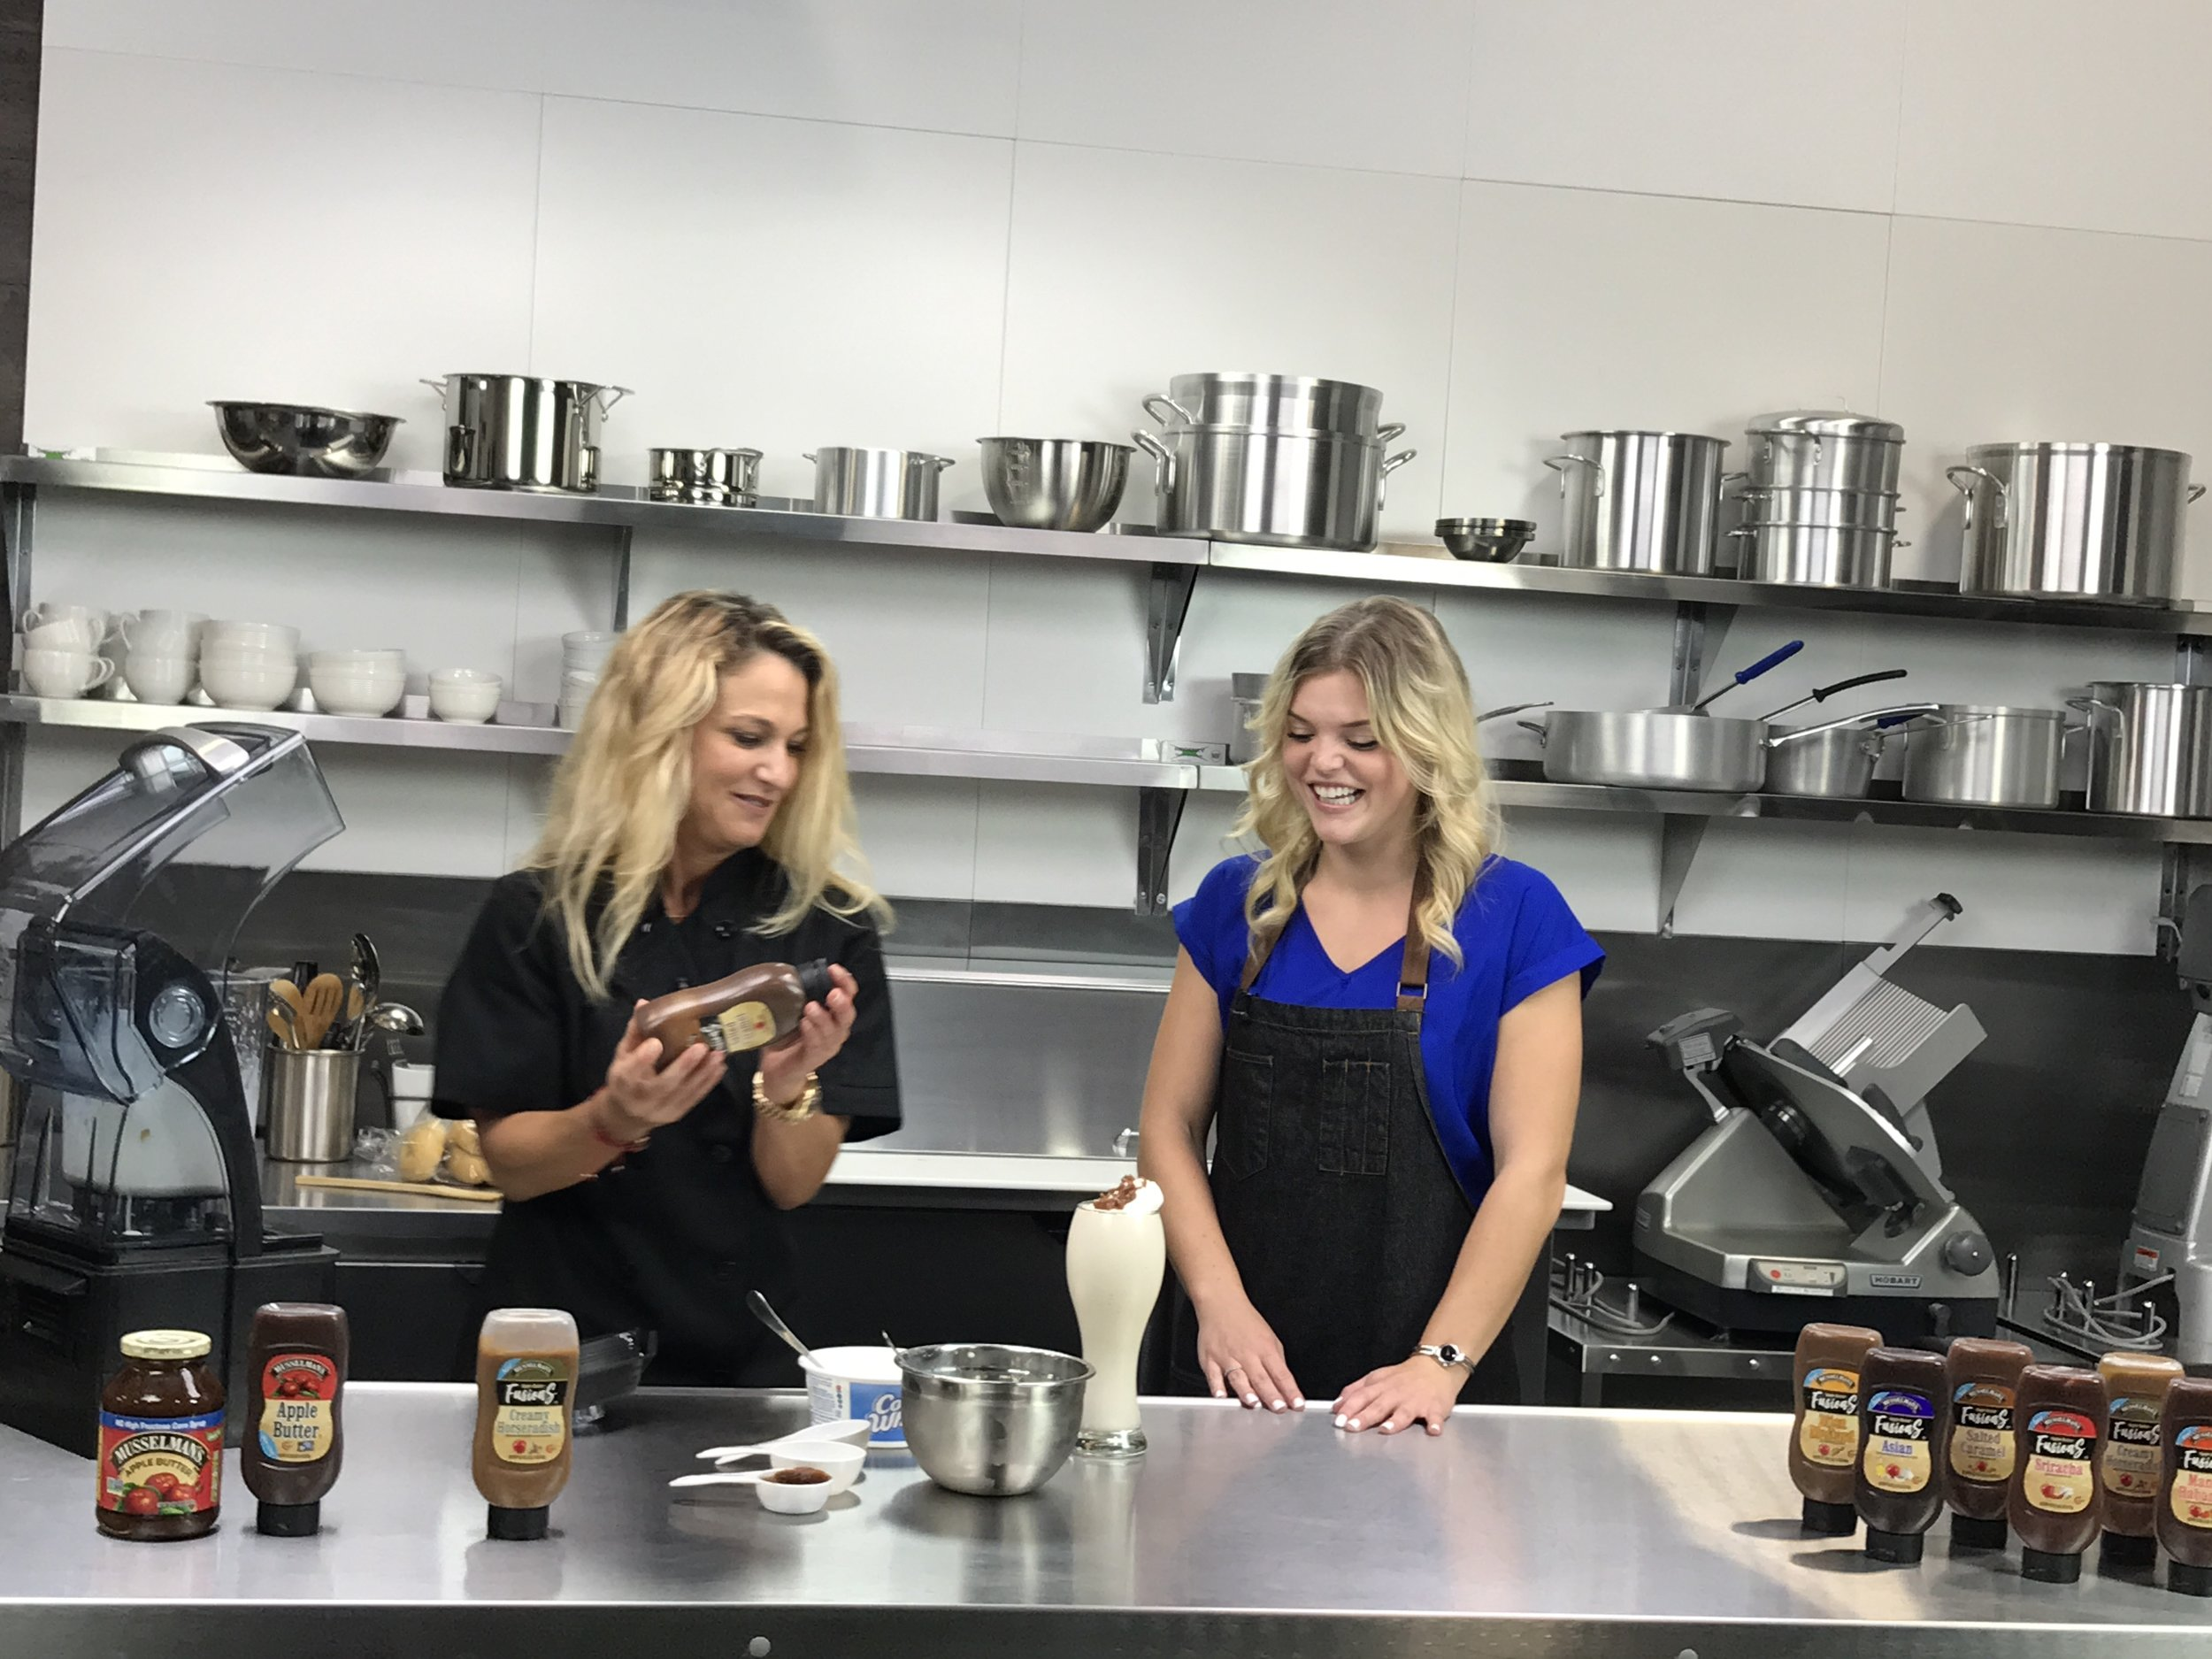 Chef Andi and Foodable Host Layla using the Musselman's Apple Butter Salted Caramel Fusion |   Foodable Network